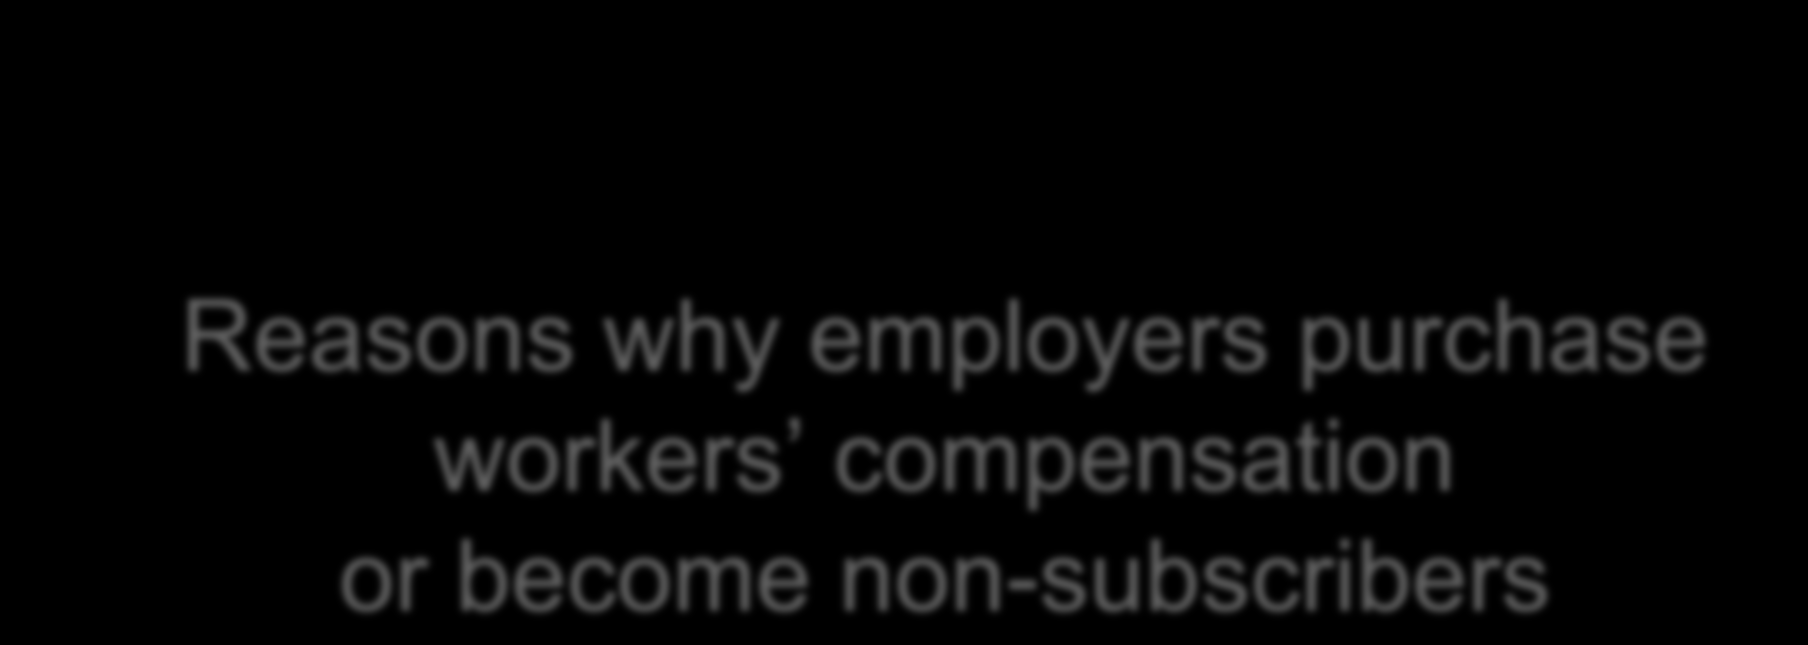 Reasons why employers purchase workers